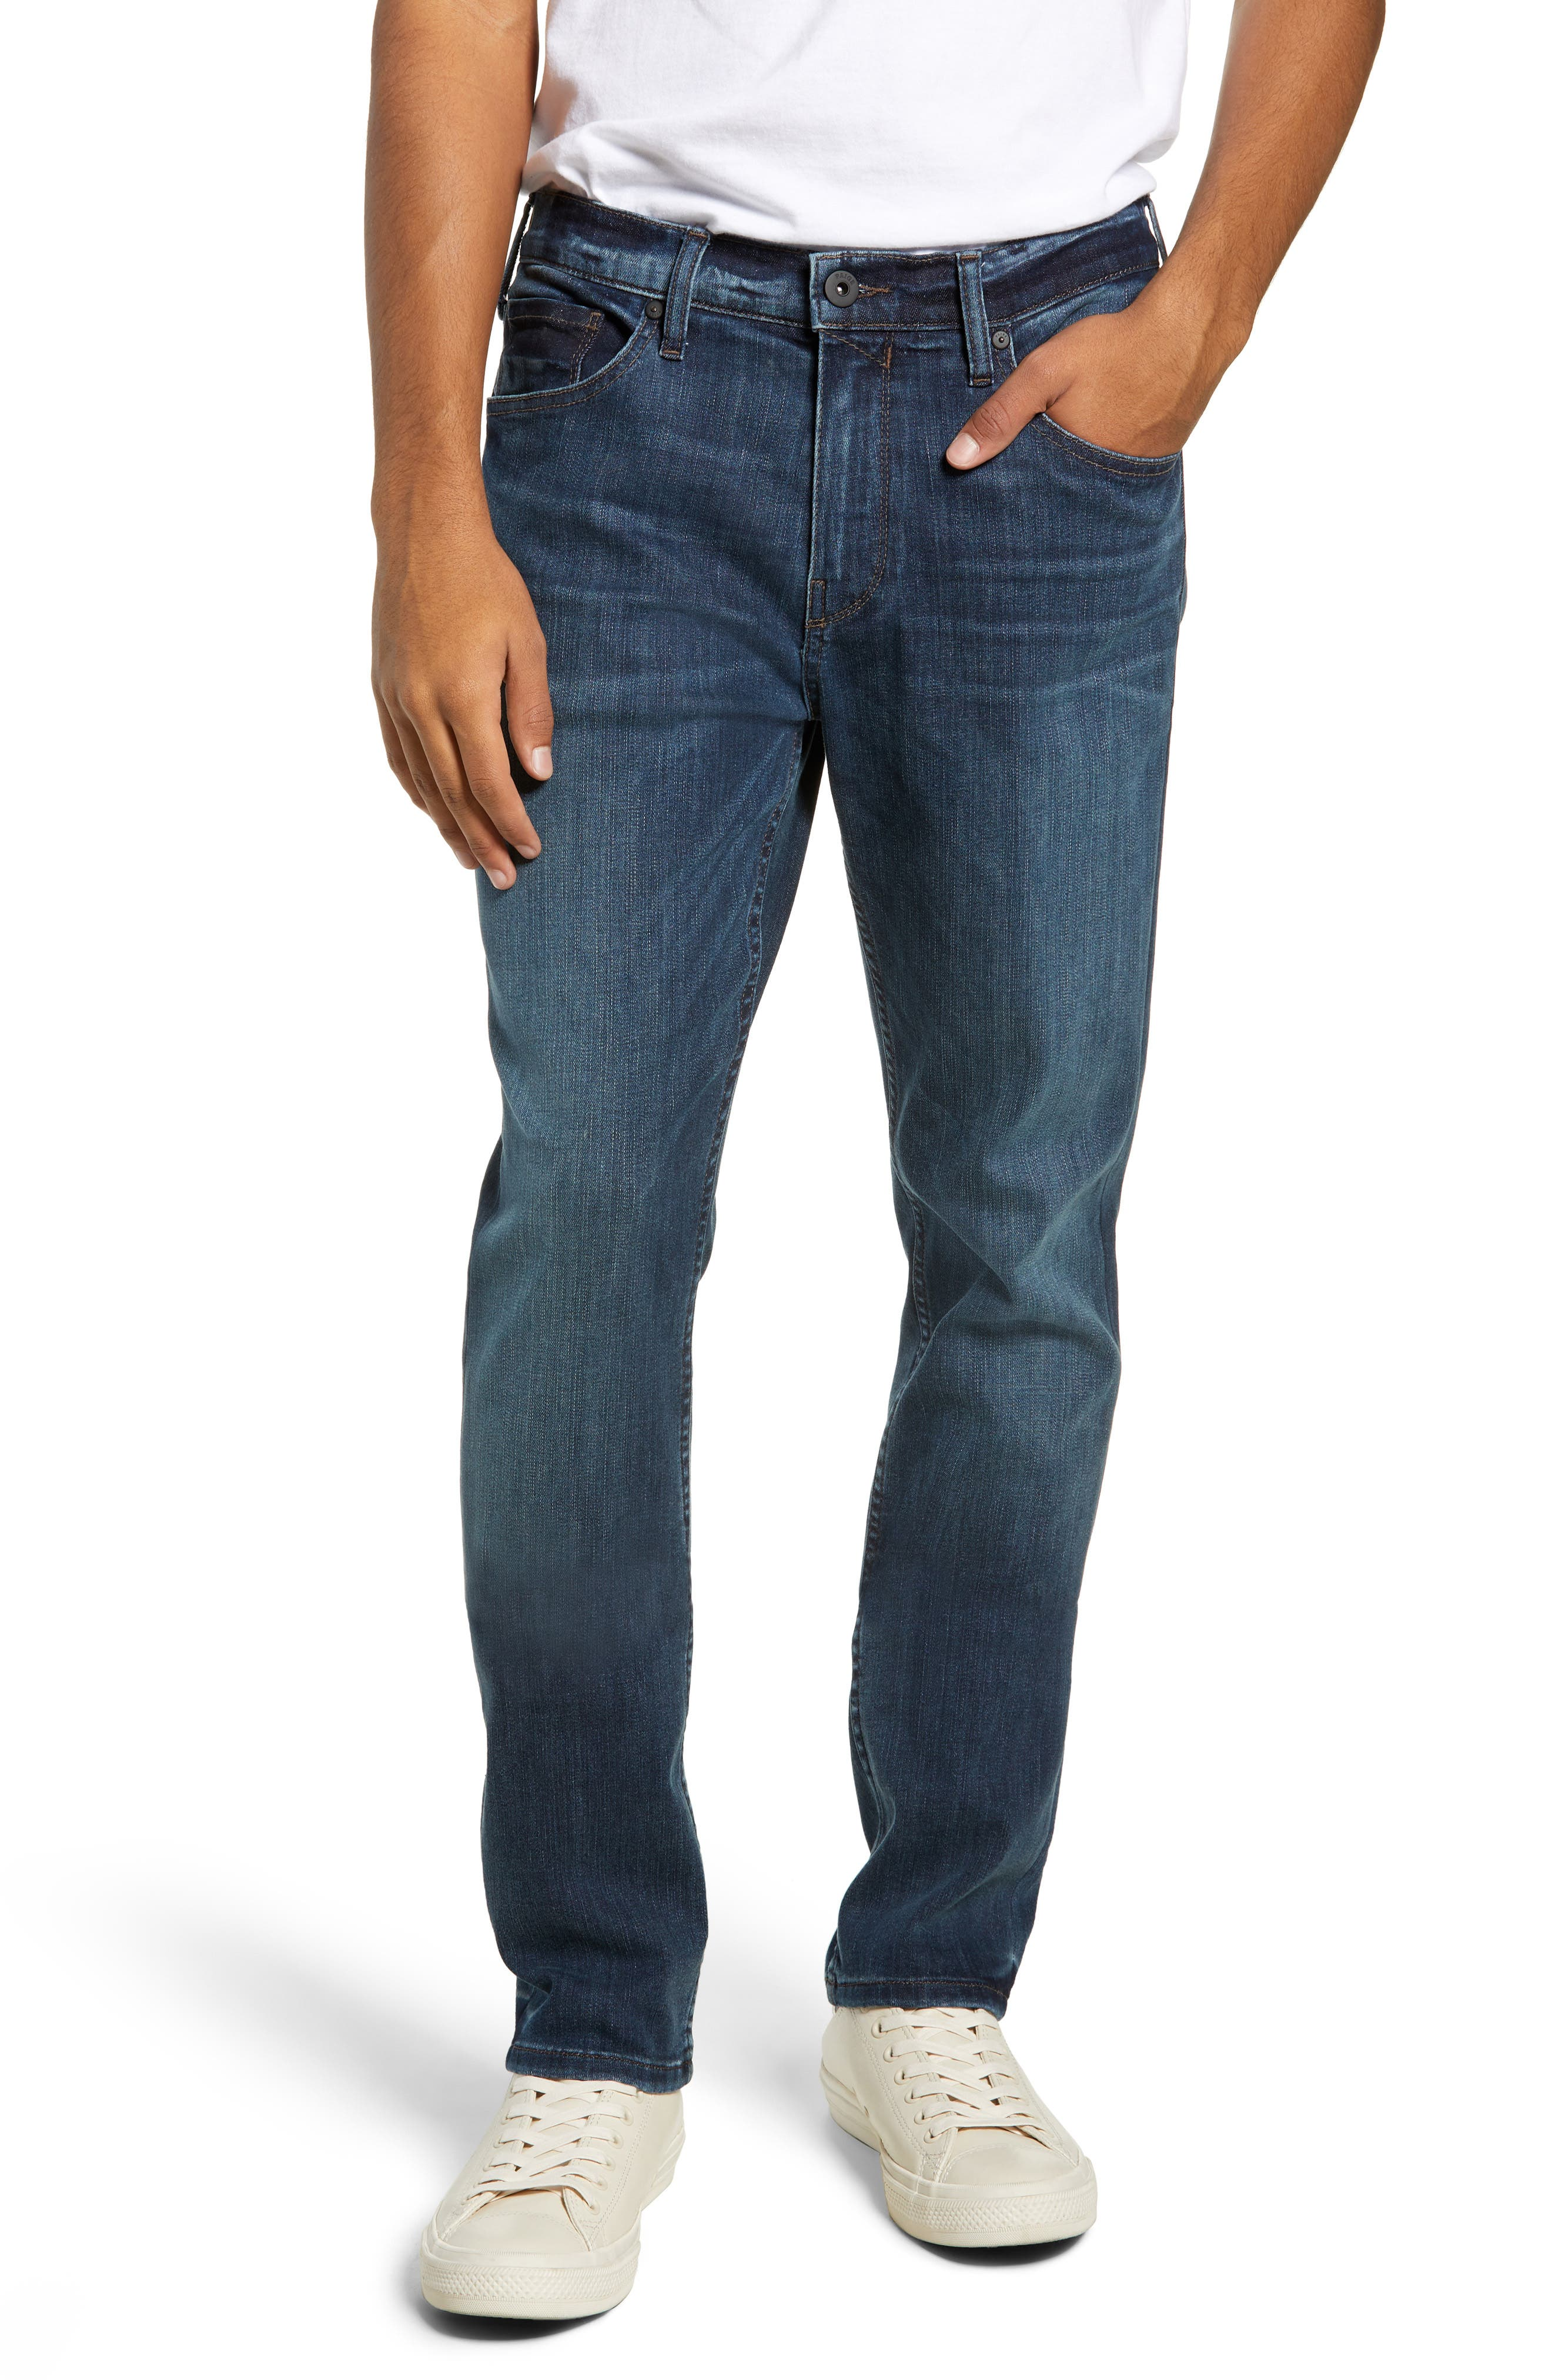 PAIGE Transcend Vintage Federal Slim Straight Leg Jeans, Main, color, ROARKE